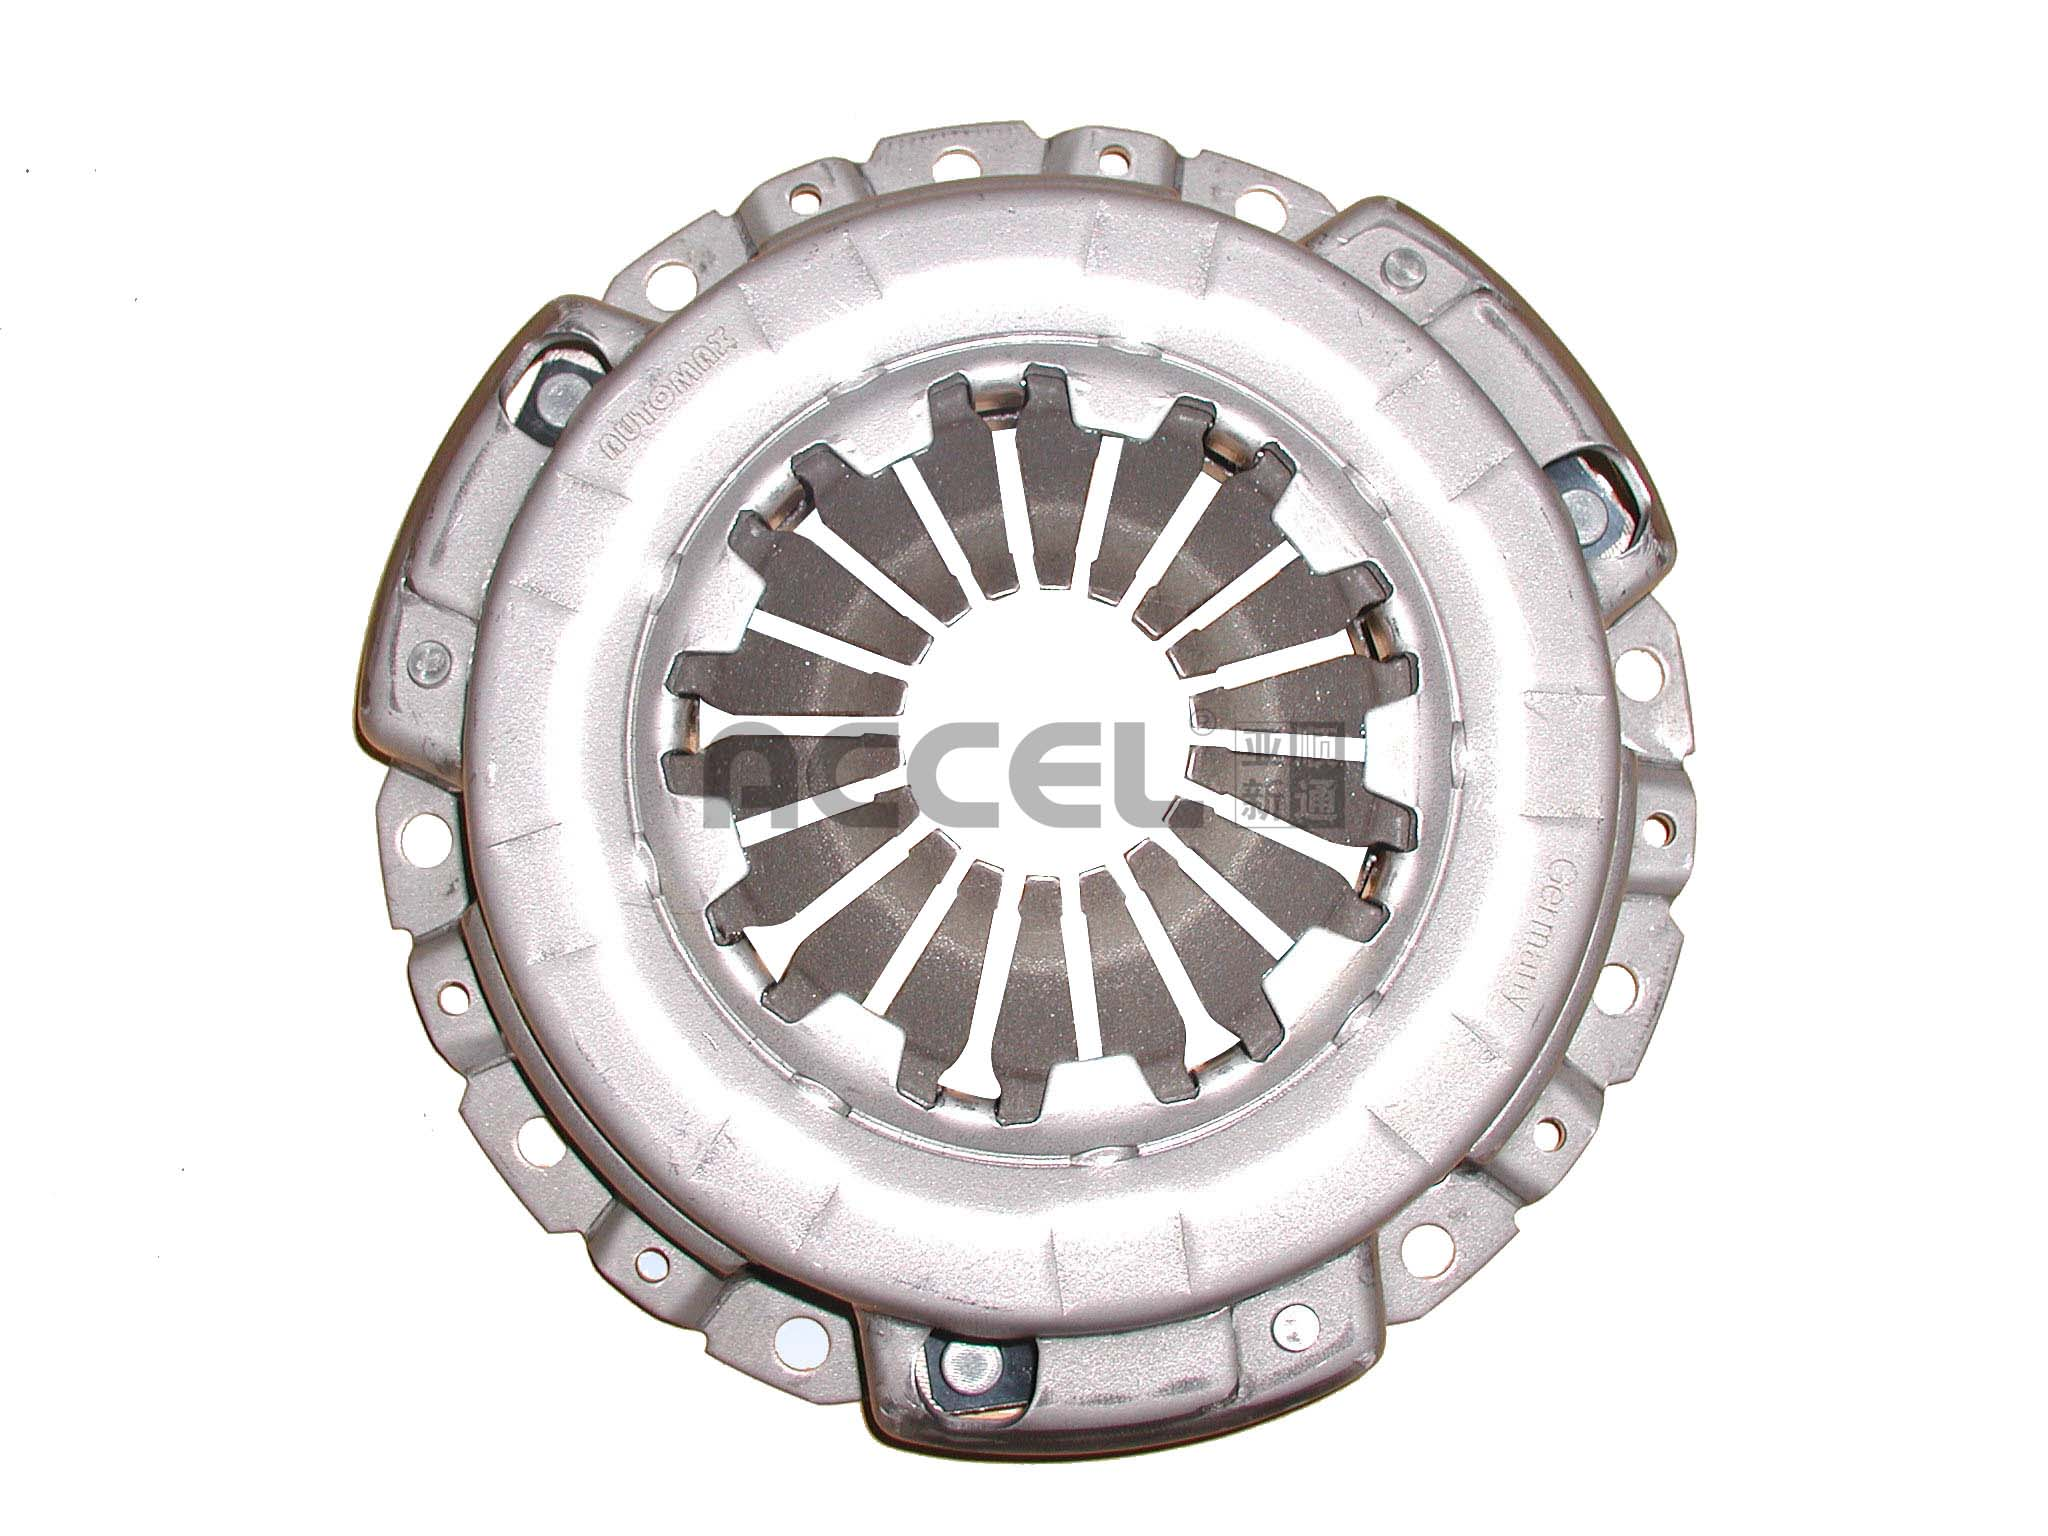 Clutch Cover/OE:DWC-33/170*110*203/CDW-007/DAEWOO/LY293/96249466